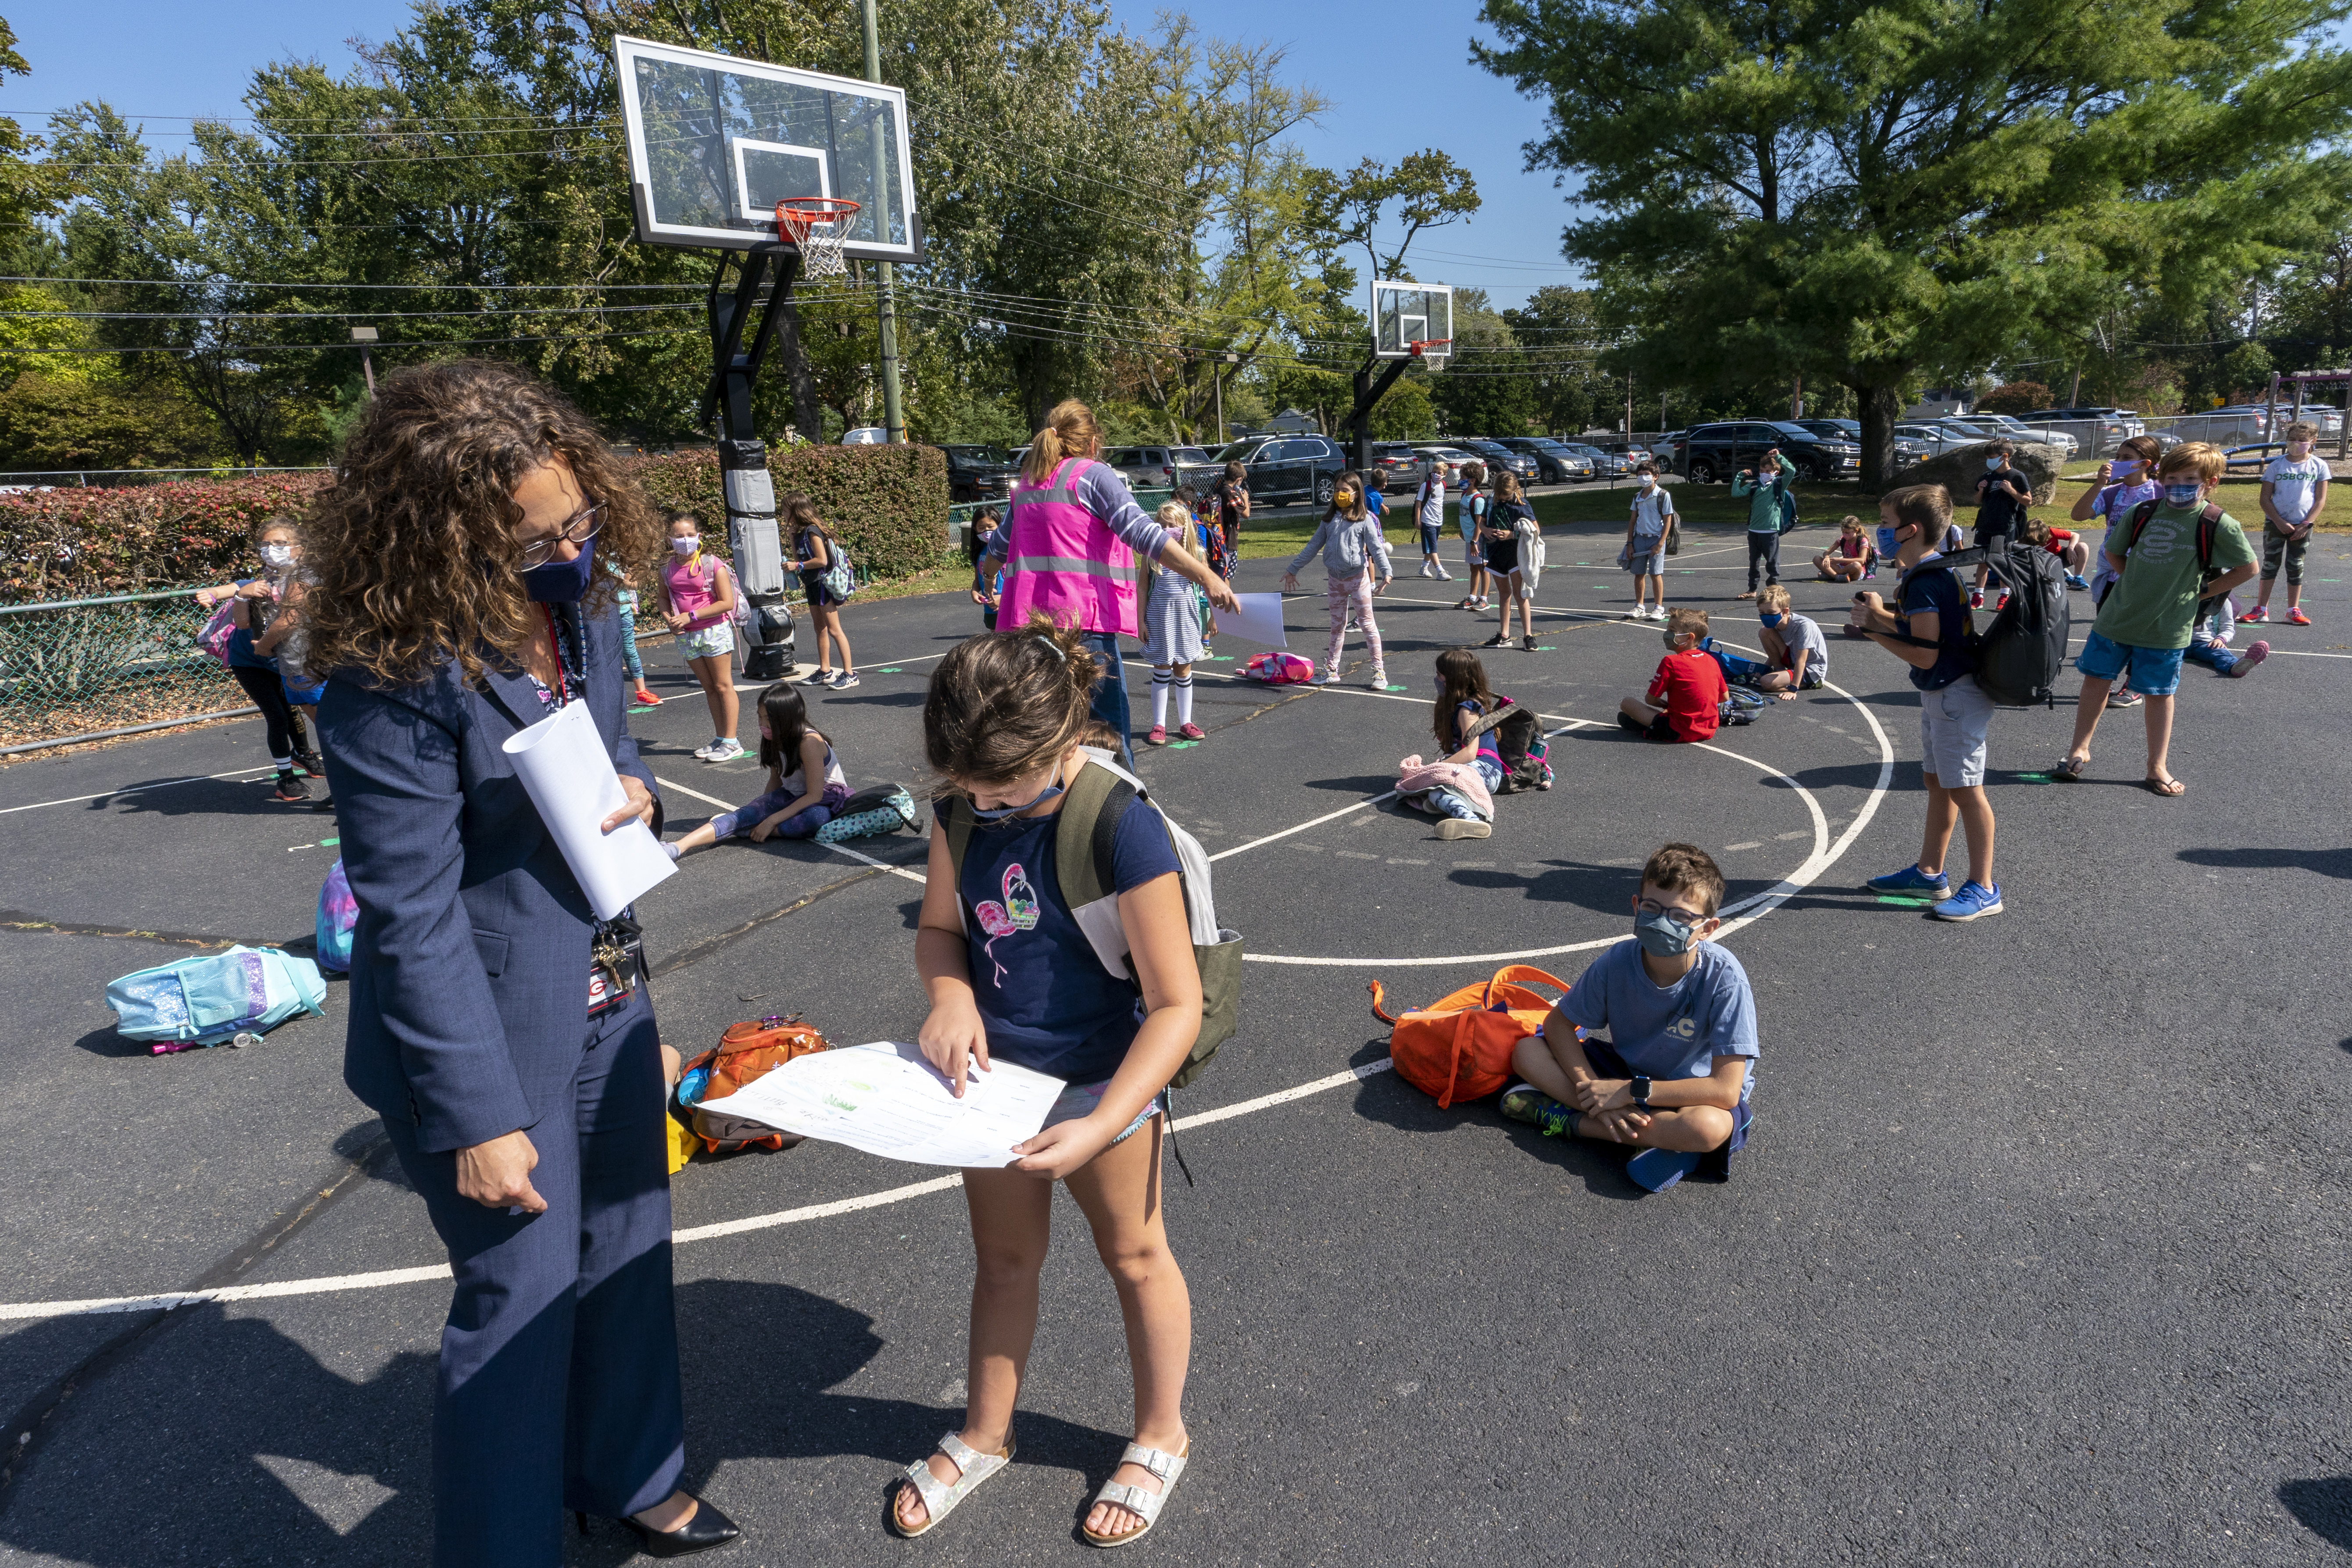 Principle Angela Garcia looks over a student's homework as children line up before entering the Osborn School, Tuesday, Oct. 6, 2020, in Rye, N.Y.